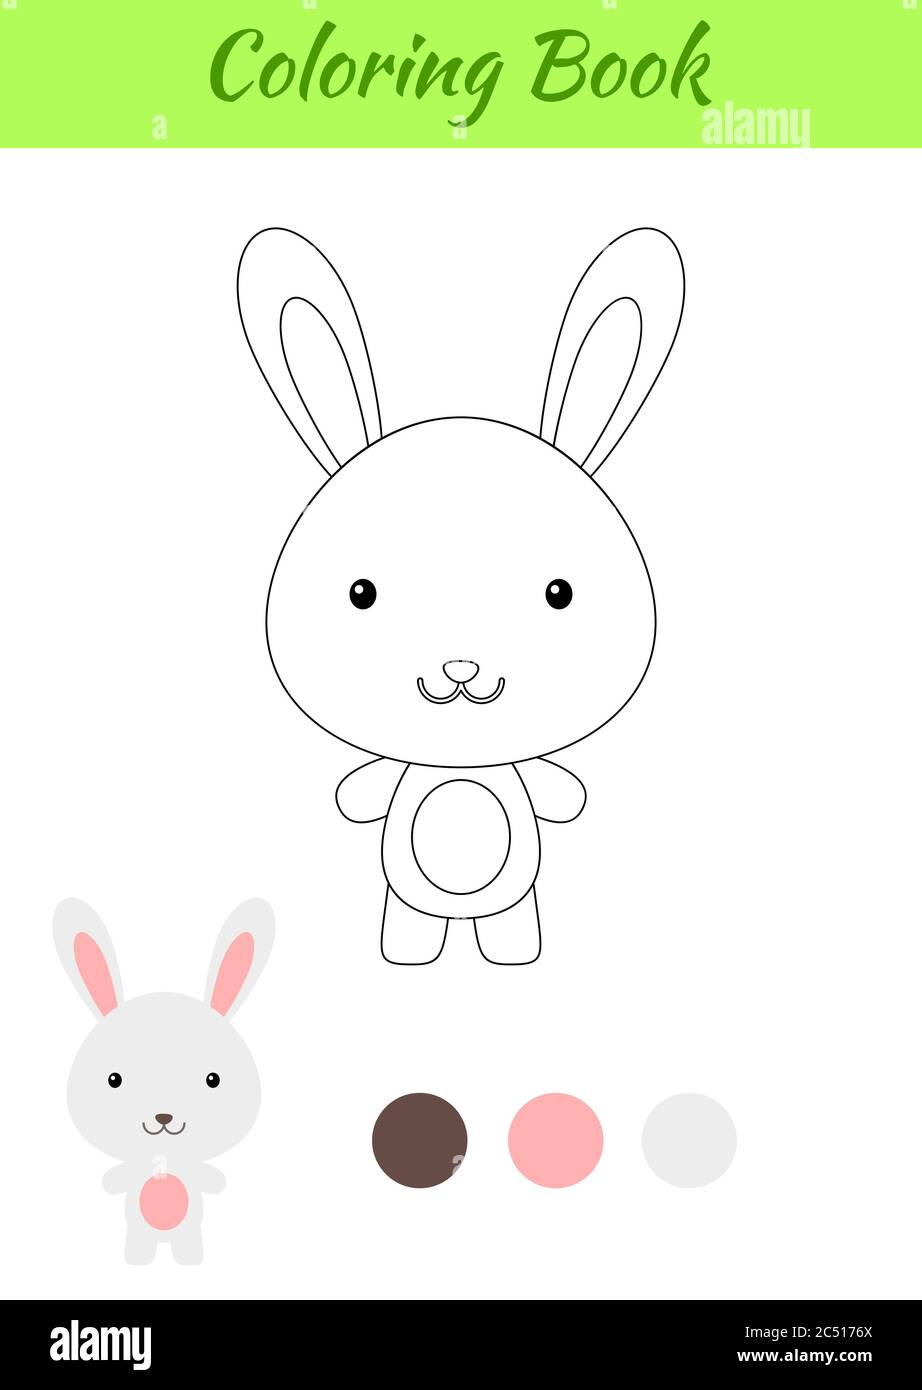 Coloring Page Happy Little Baby Rabbit Coloring Book For Kids Educational Activity For Preschool Years Kids And Toddlers With Cute Animal Stock Vector Image Art Alamy